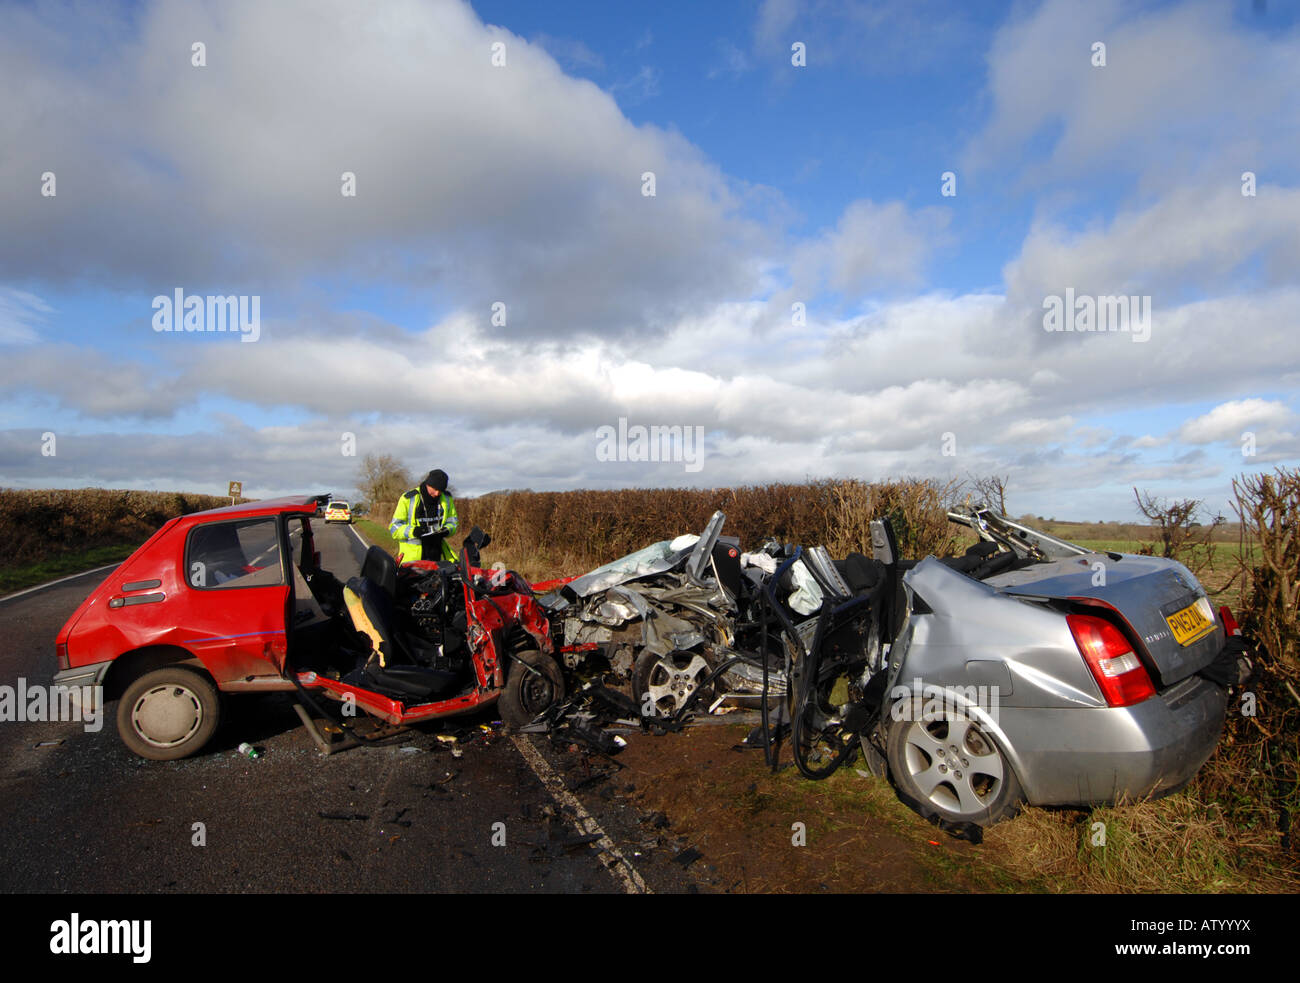 Police at the scene of a fatal head on car crash that killed 4 ...